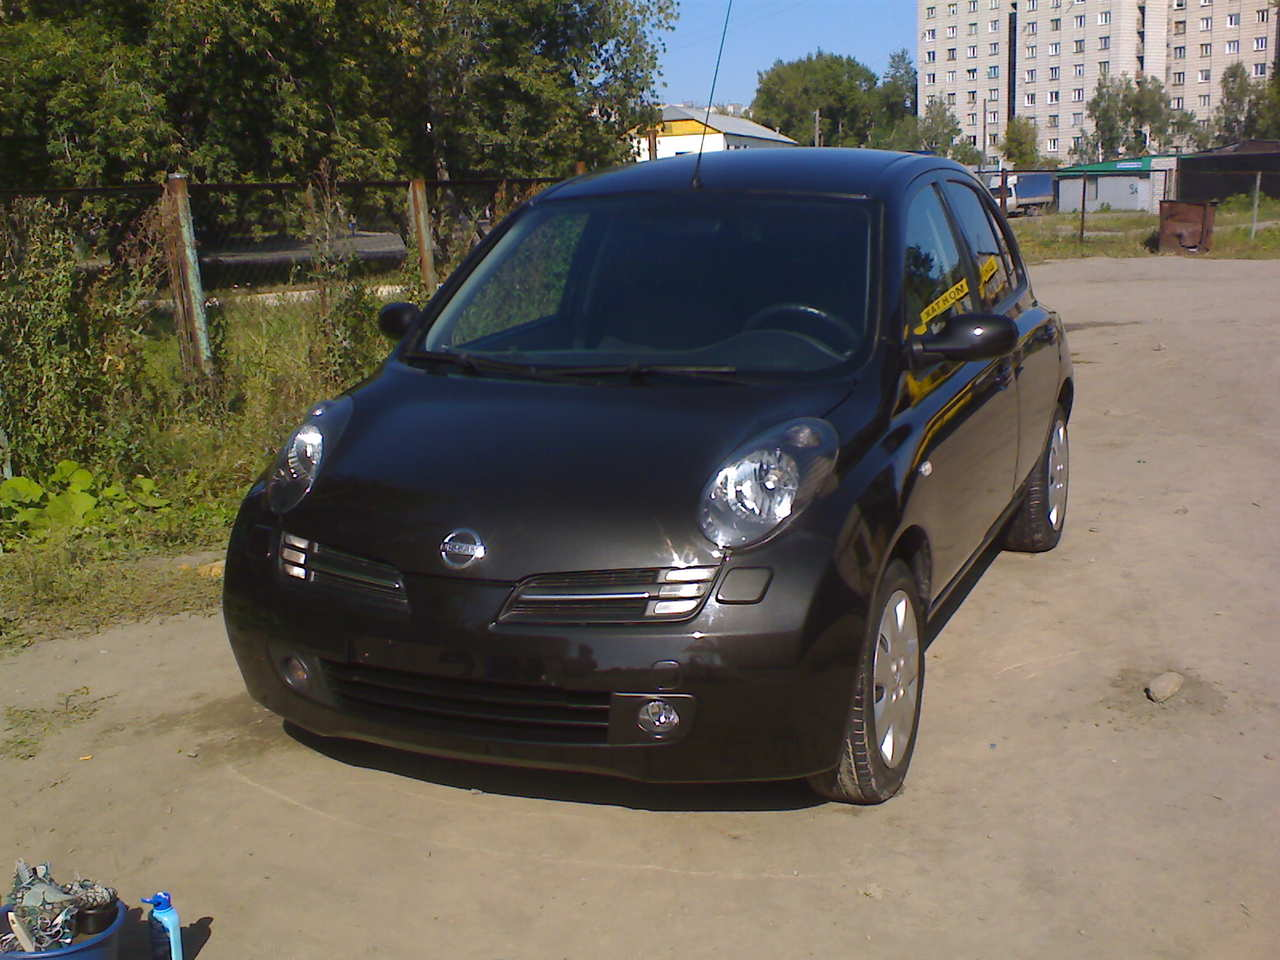 used 2005 nissan micra photos 1240cc gasoline ff. Black Bedroom Furniture Sets. Home Design Ideas